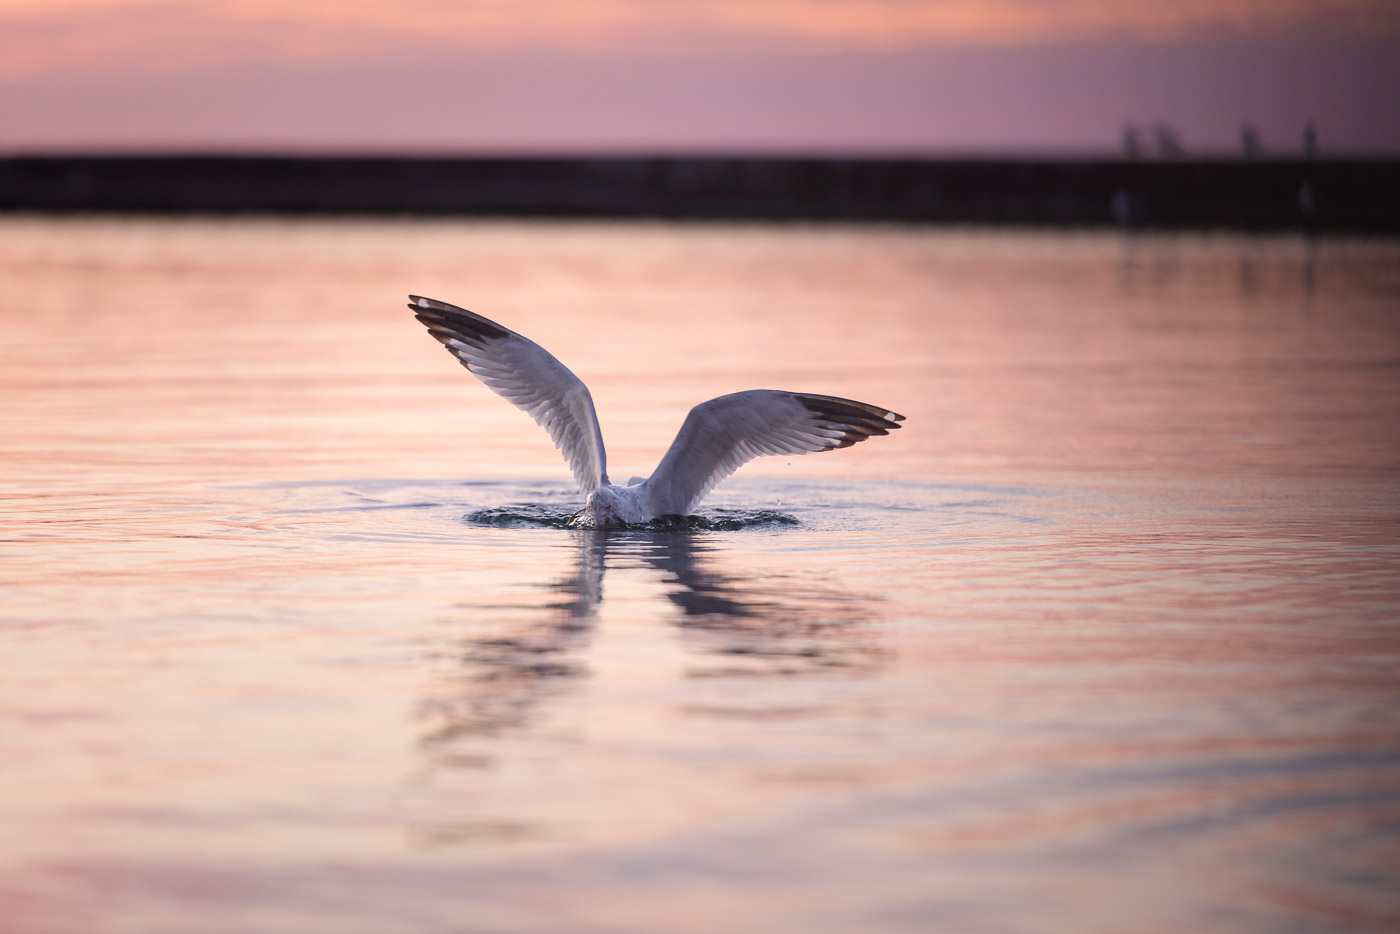 A seagull nose-dives into Lake Ontario in search of food.